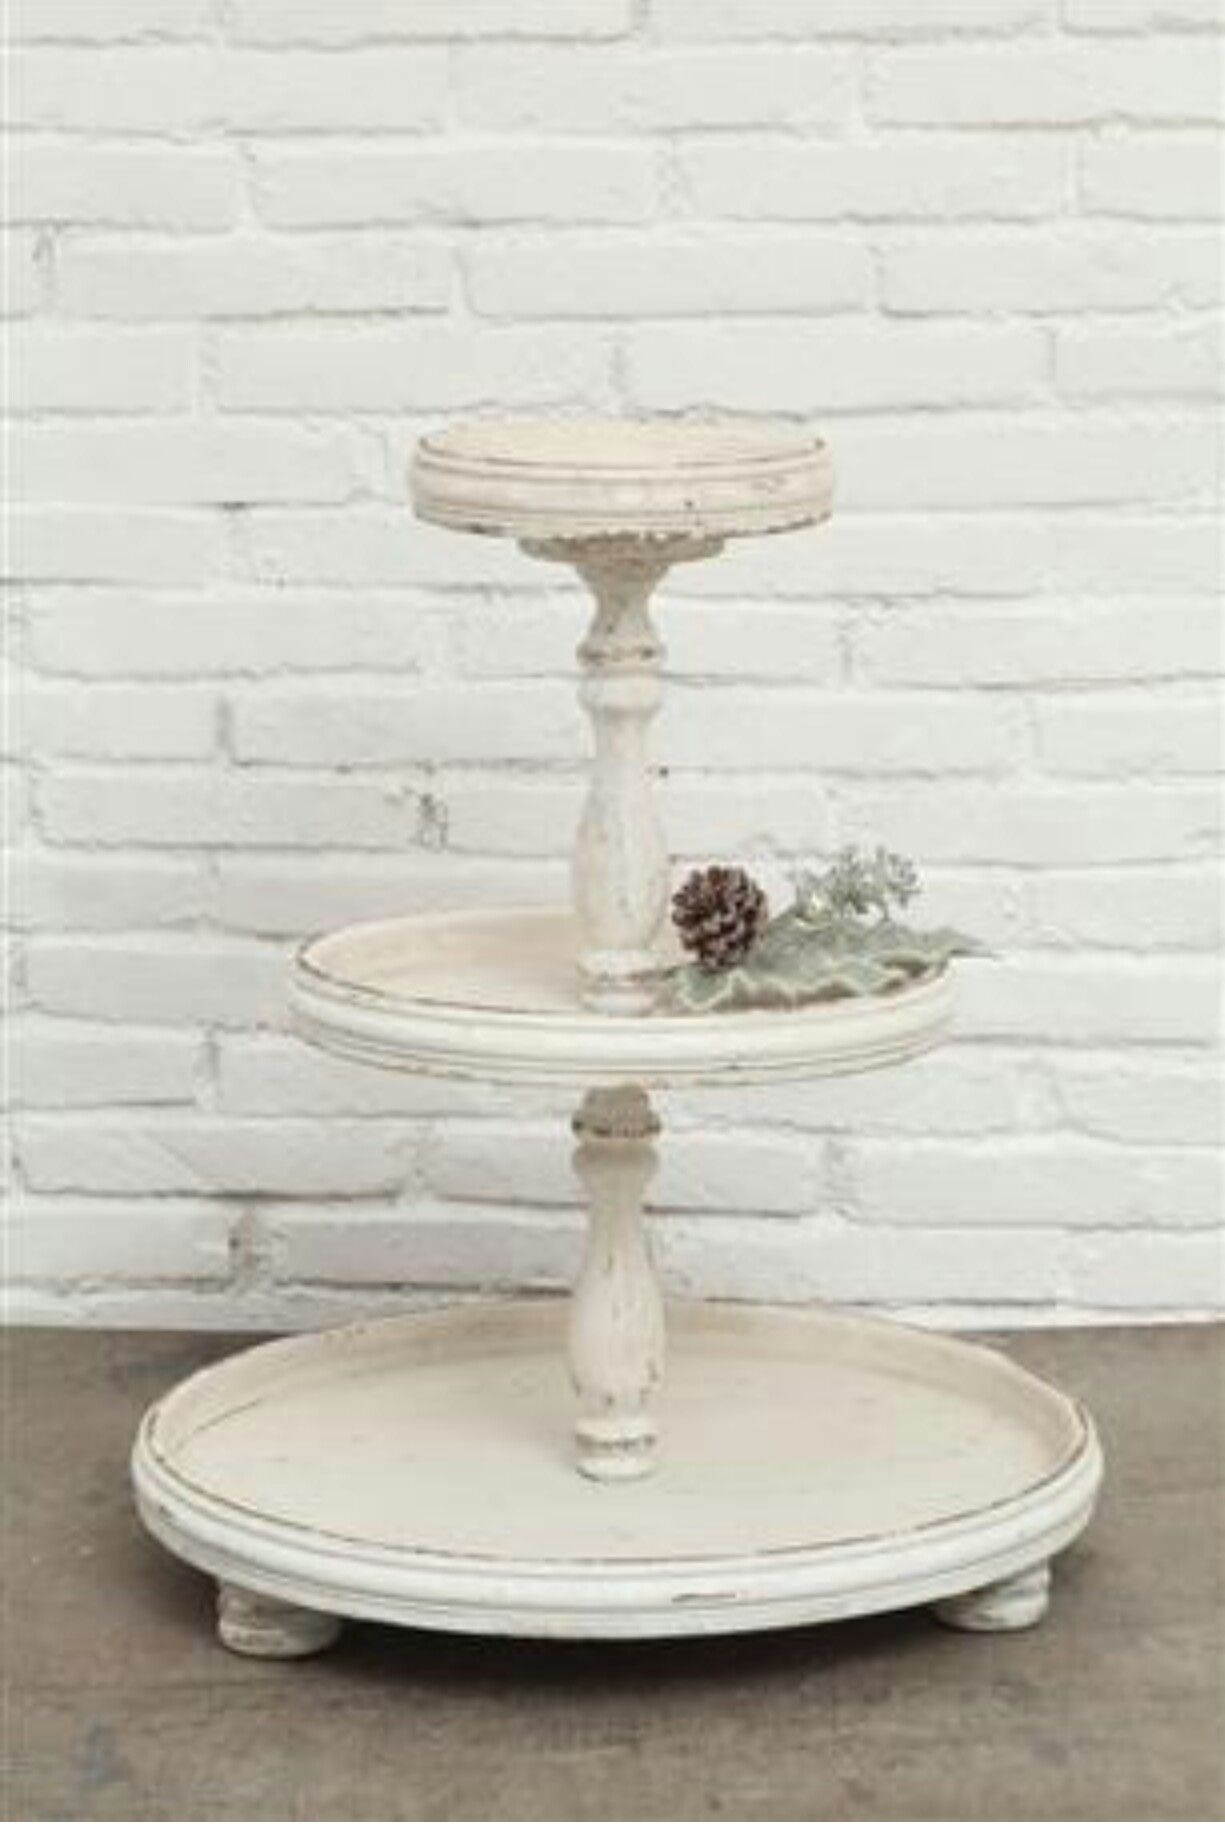 3 Tiered Tray Painted White Tiered Tray Diy Tiered Stand Wood Tiered Stand